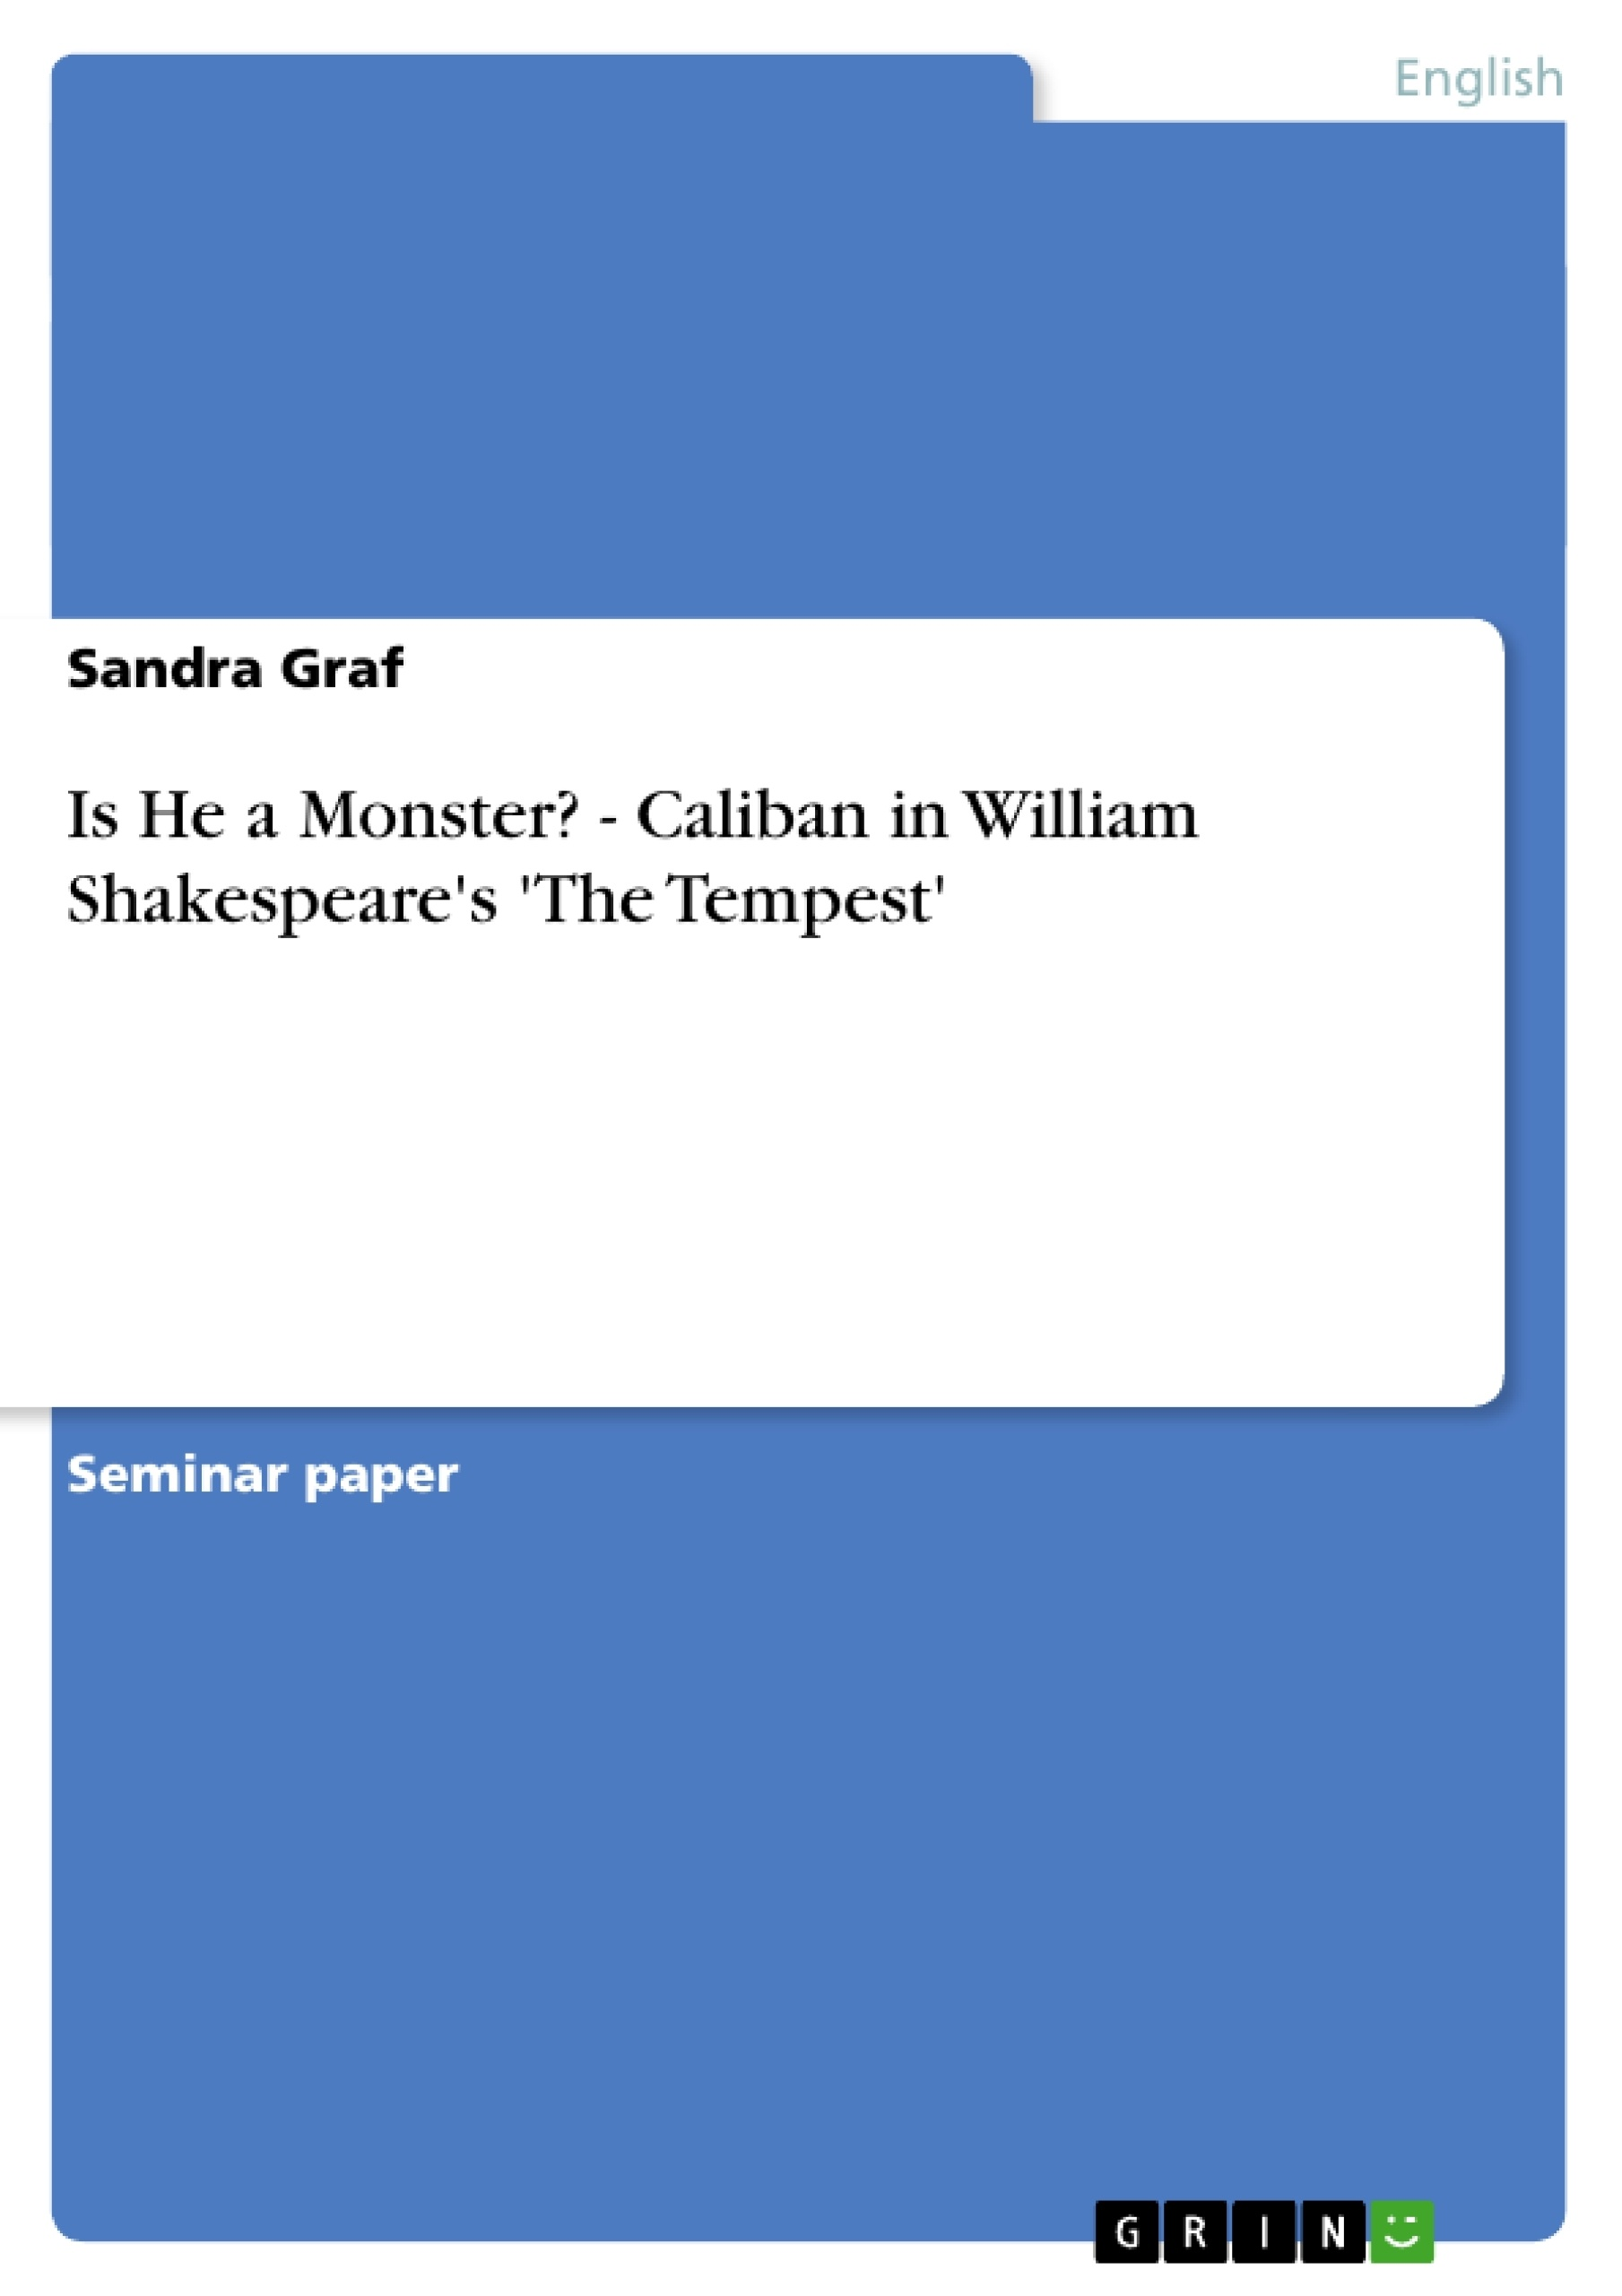 Title: Is He a Monster? - Caliban in William Shakespeare's 'The Tempest'